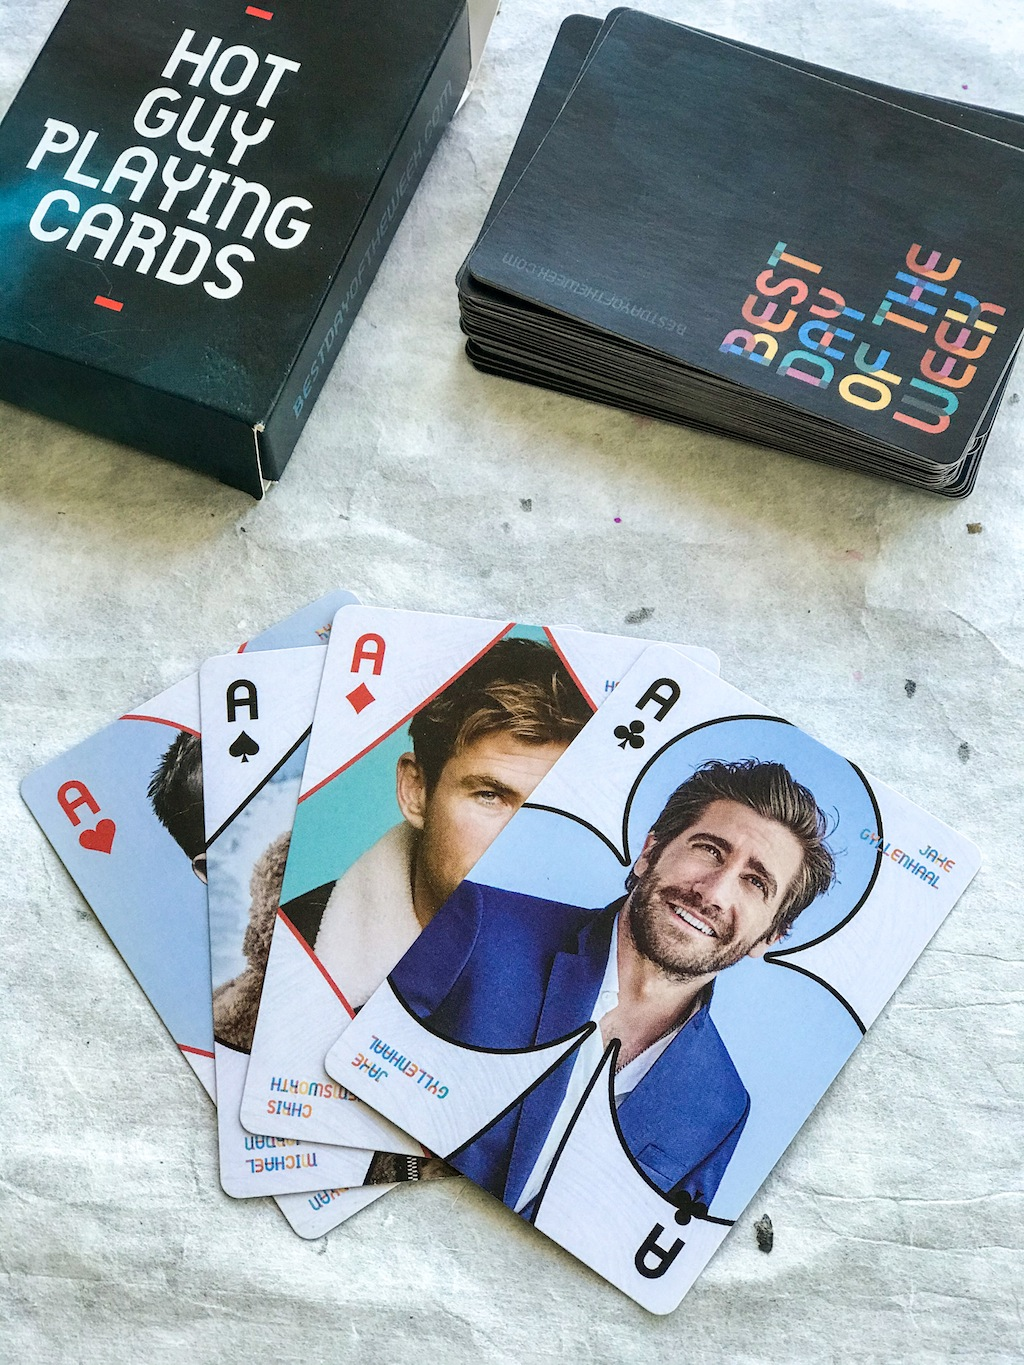 Hot Guy Playing Cards